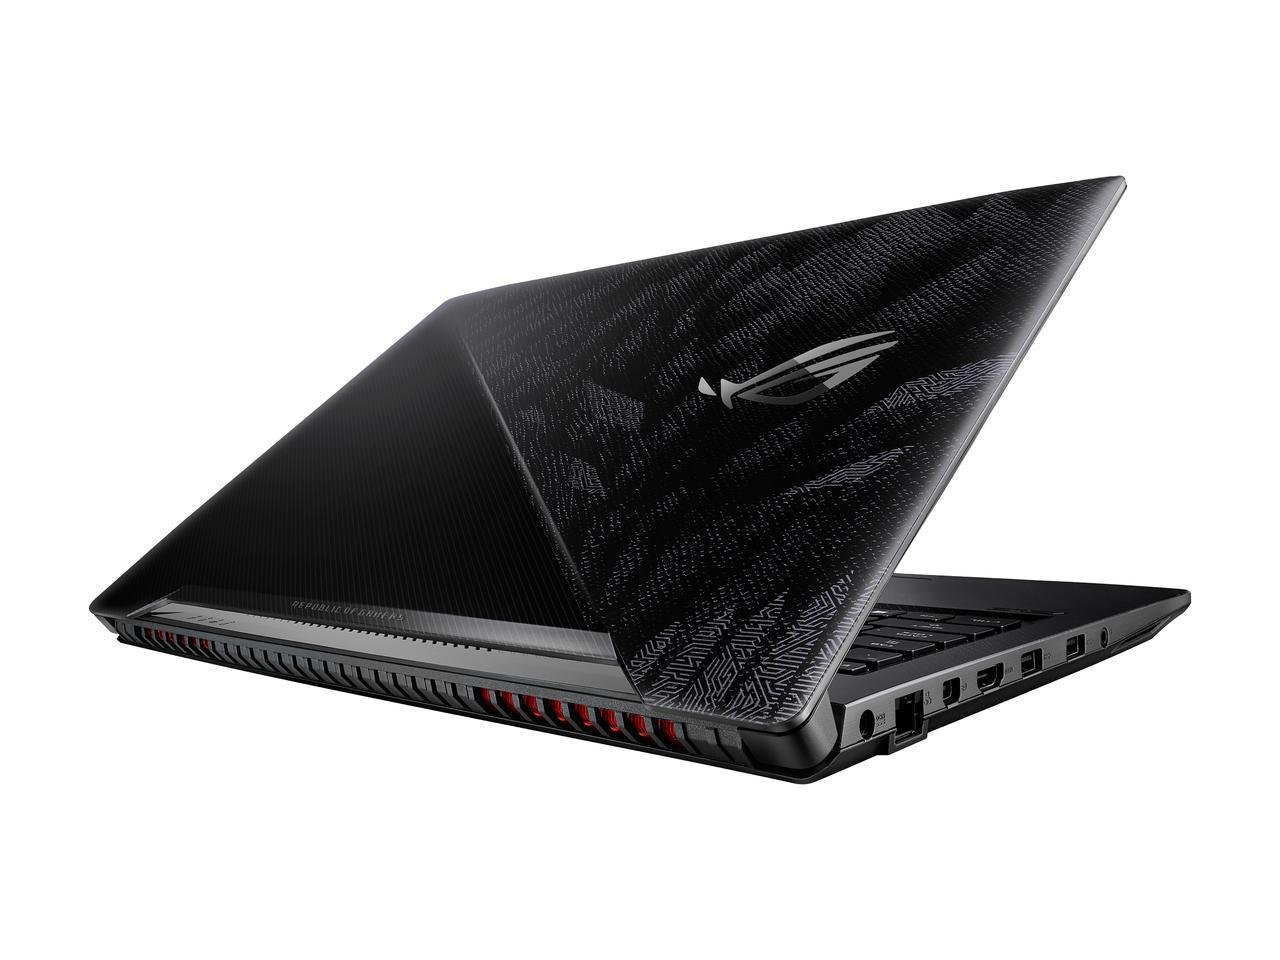 "Amazon.com: ASUS ROG Strix Thin & Light Gaming Laptop | 15.6"" Full HD 